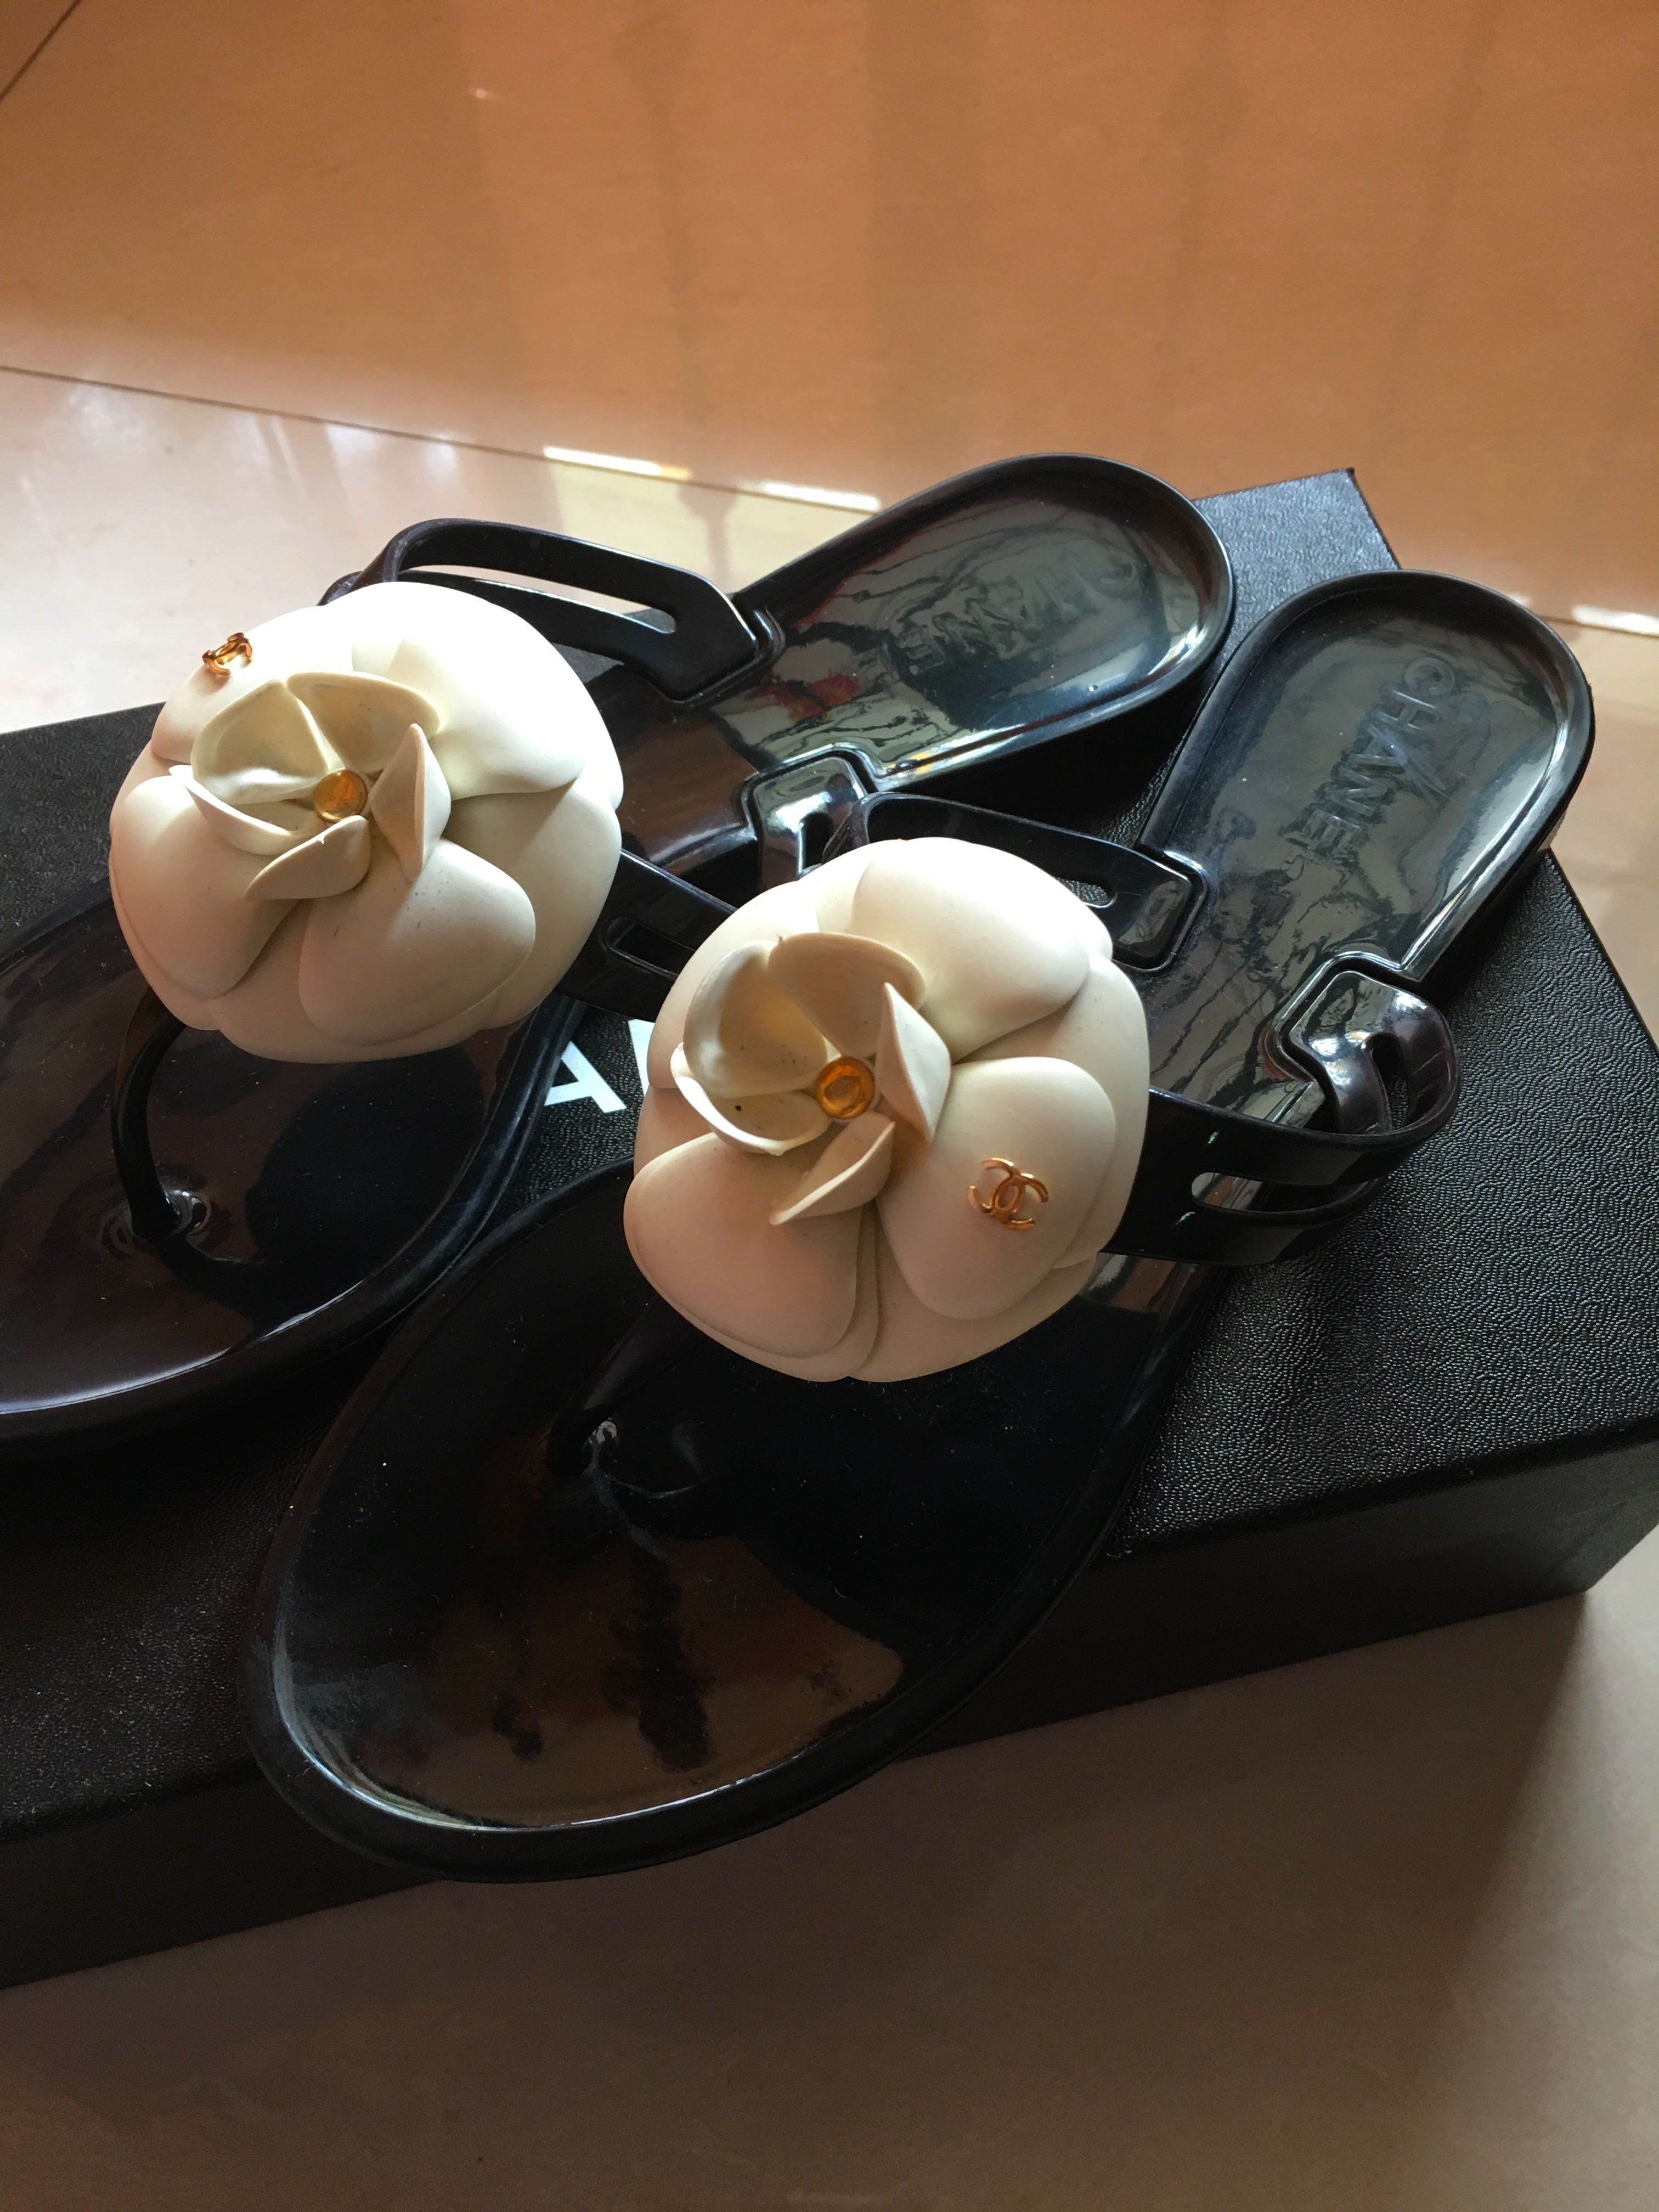 100 Authentic Chanel Camelia Slippers Luxury Shoes On Carousell Inside Flats Kamelia Beige 39 Photo